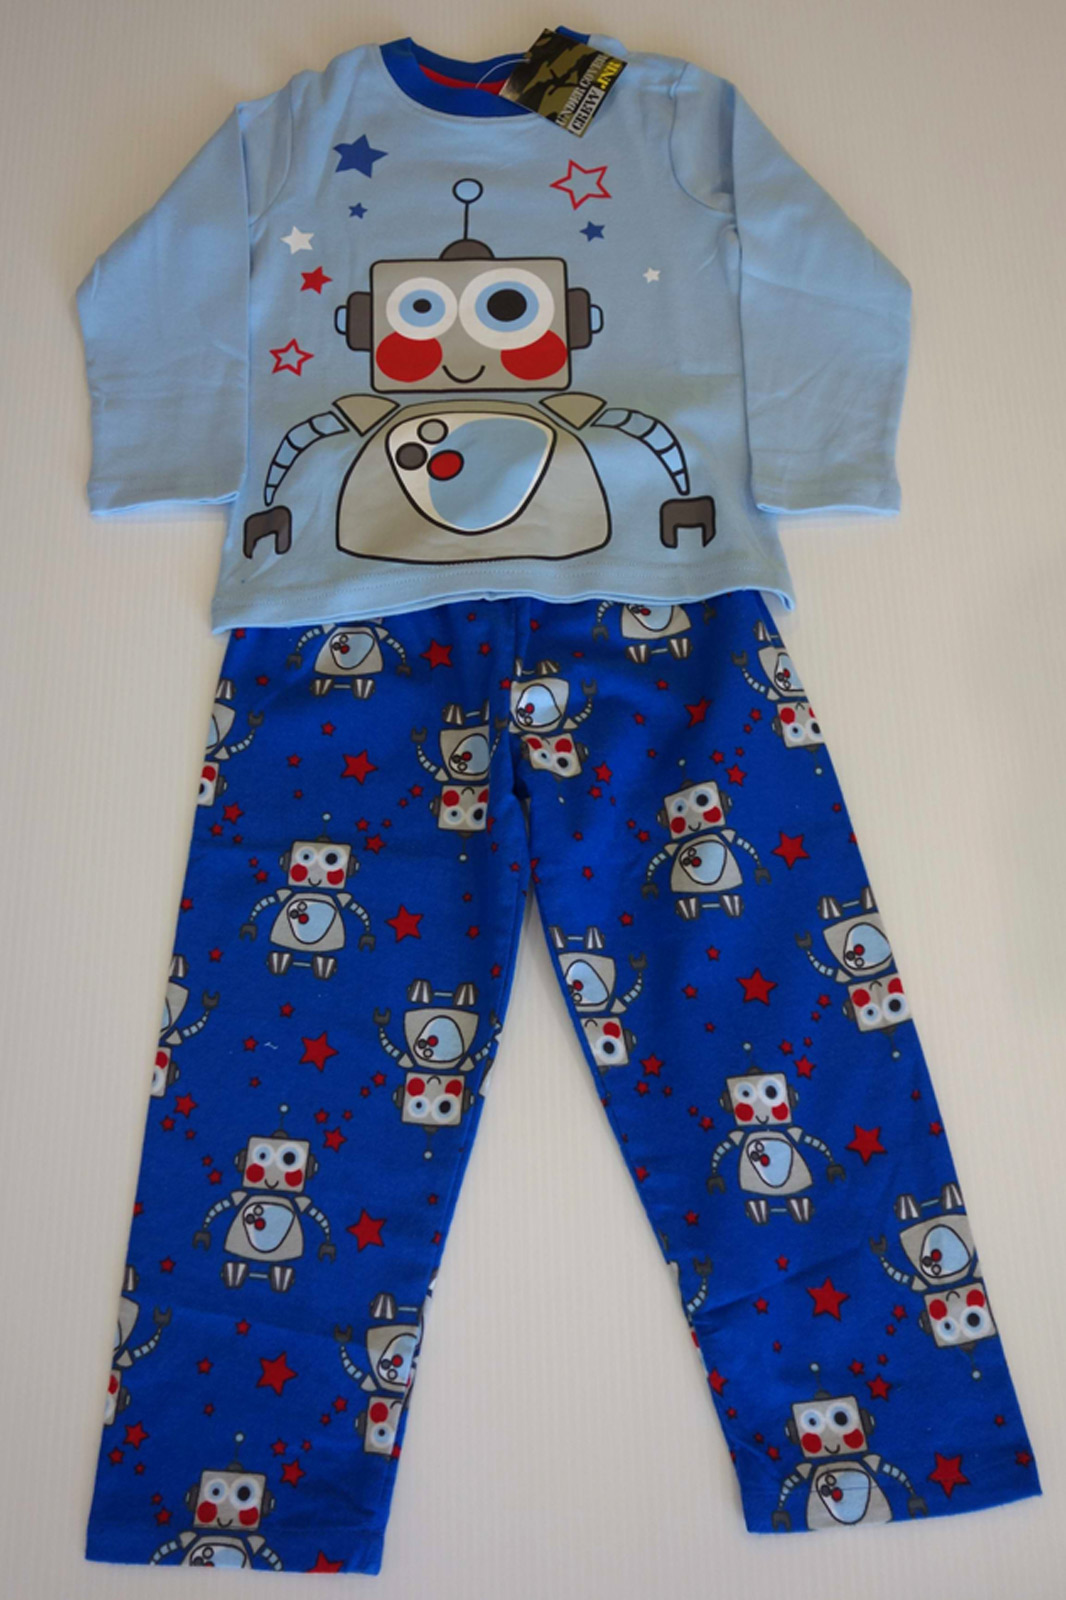 Shop Boys Pyjamas Australia. Cute or cool, pants or shorts, our boys pyjamas collection has it all. Shop our boys clothes range from leading Australian labels and have your little boy dressed and ready for any occasion including a good nights sleep!